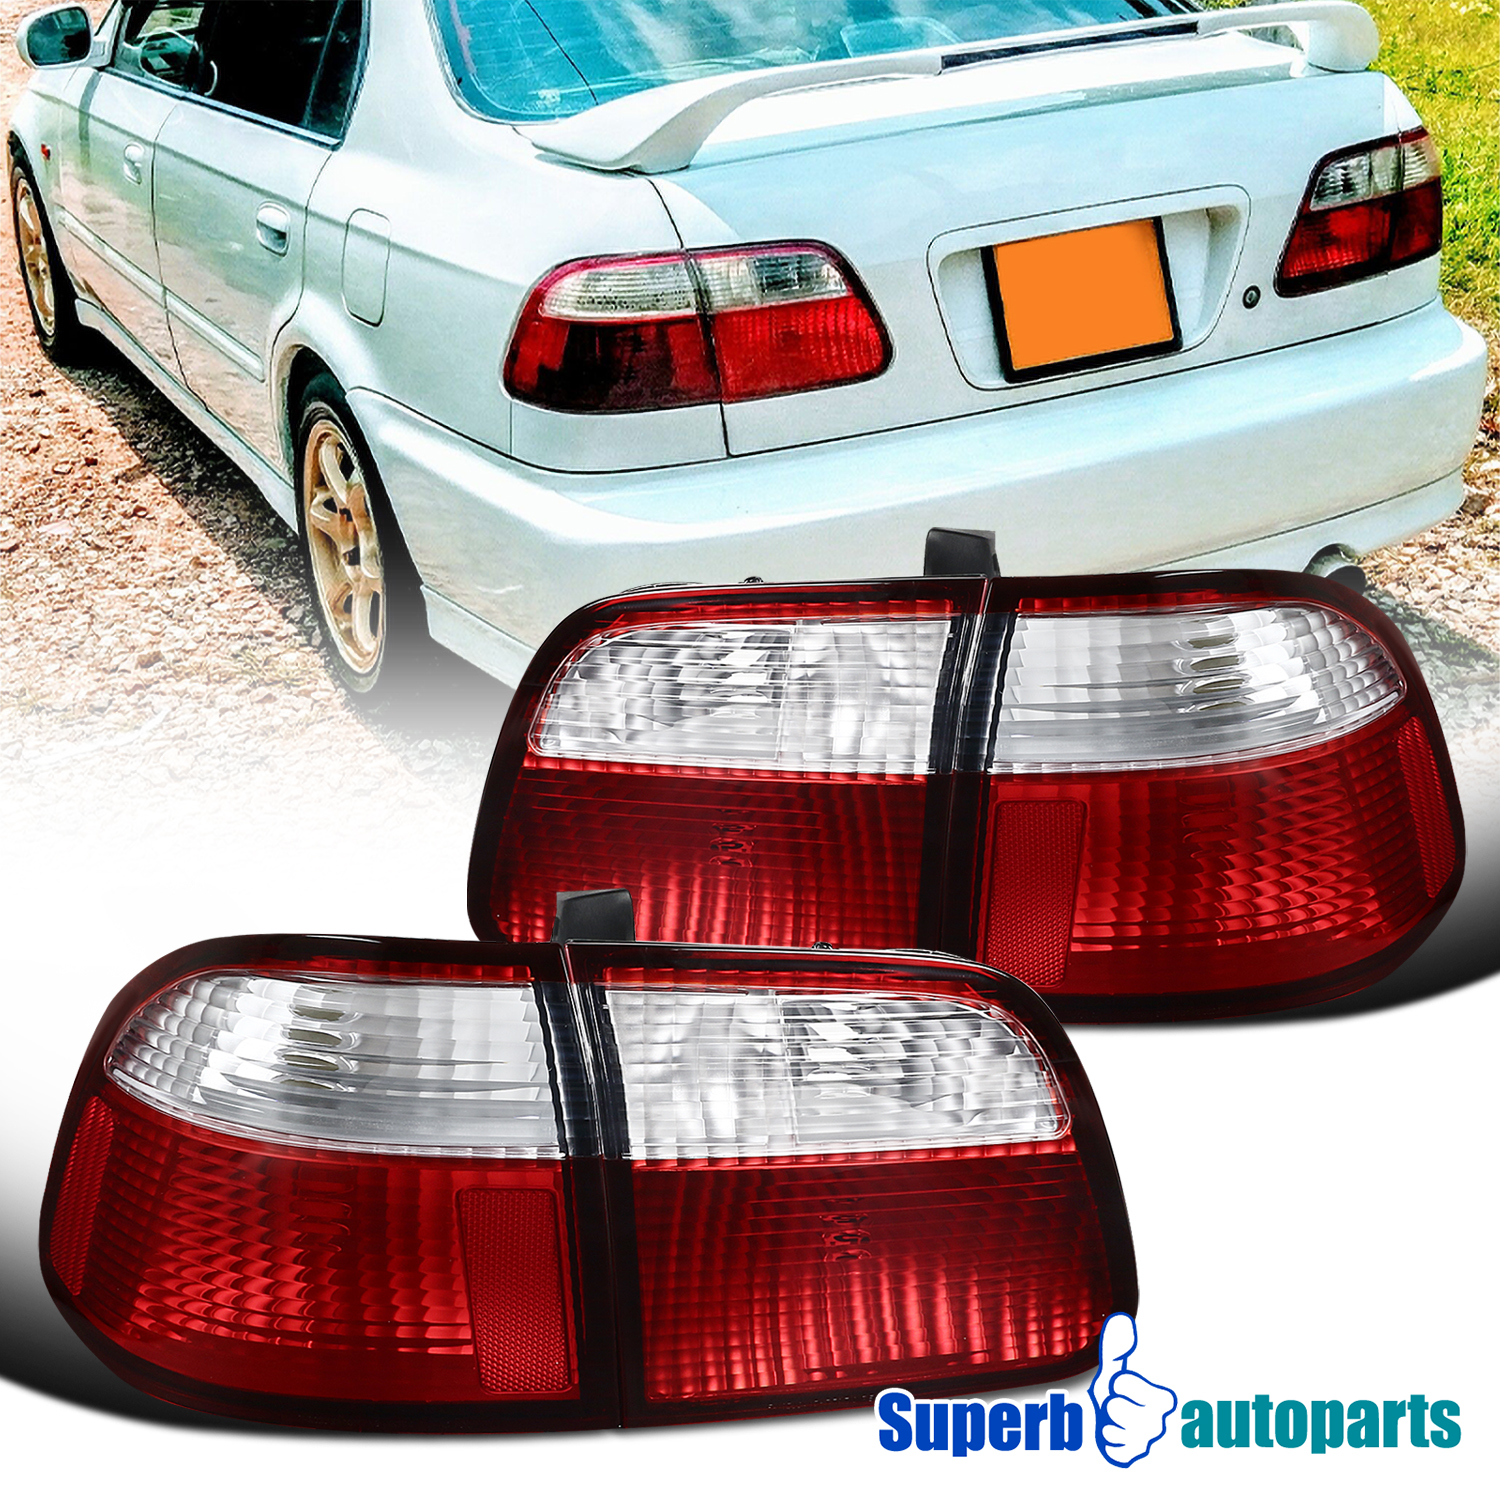 Details About For 1999 2000 Honda Civic Sedan Red Clear Tail Lights Brake Lamps Replacement